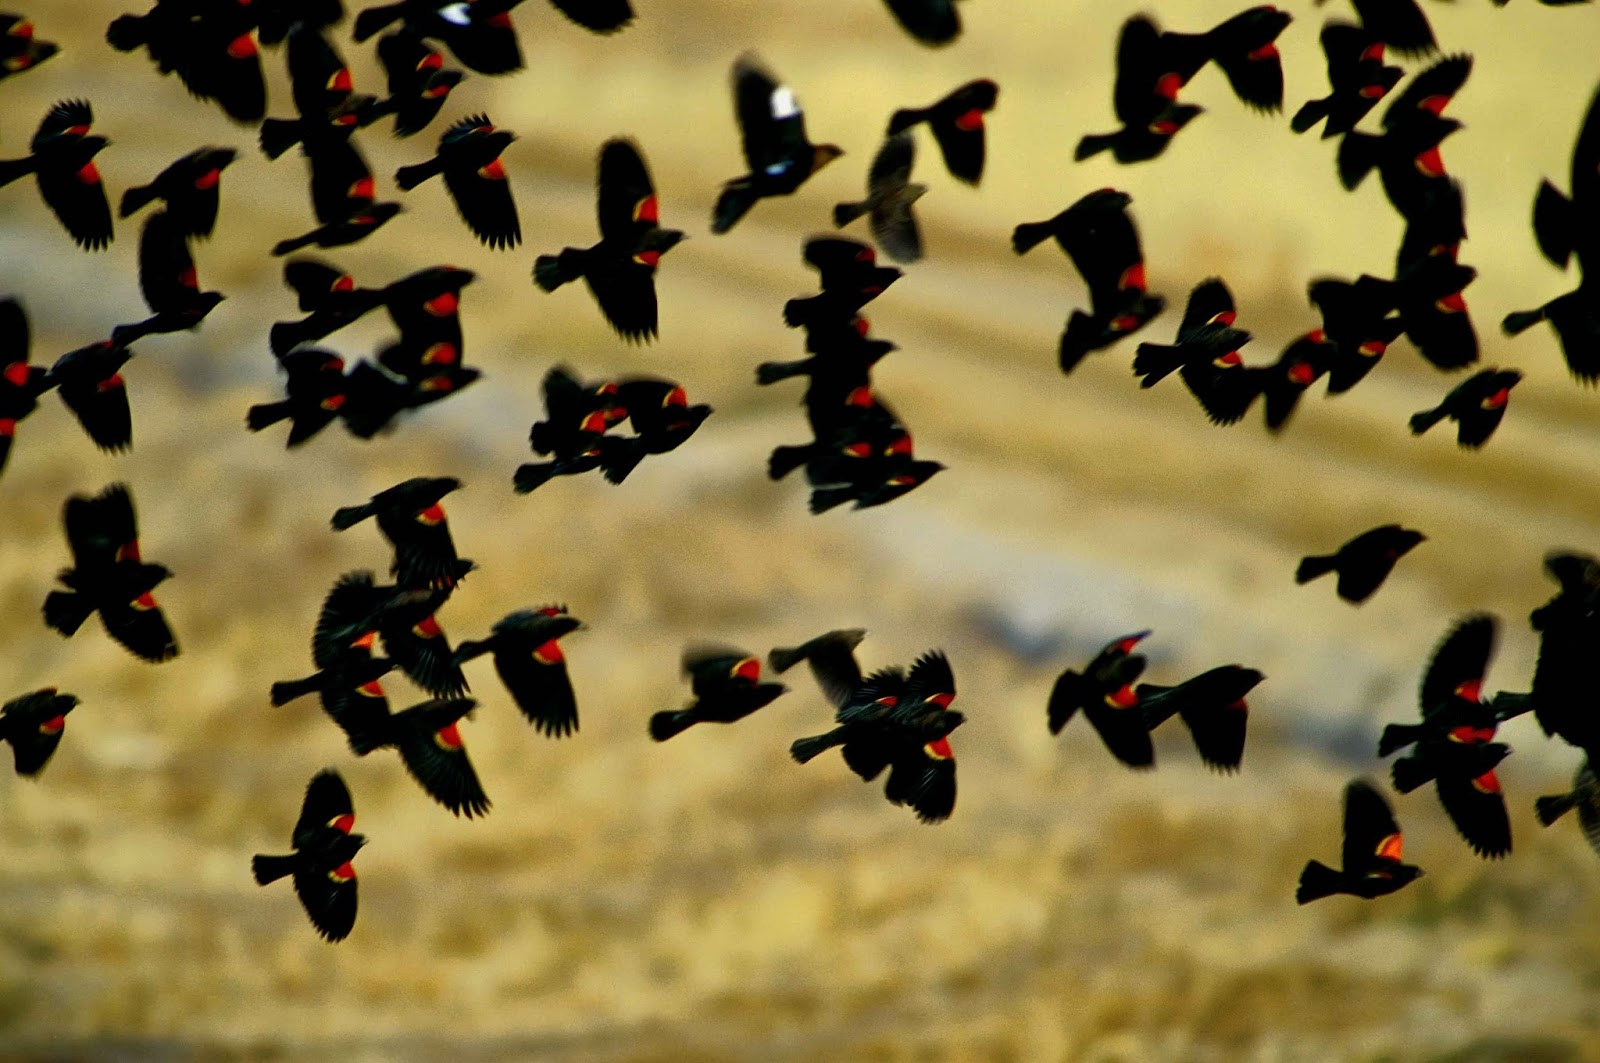 Muse of Hestia: Red Winged Blackbird - Magick, Community and